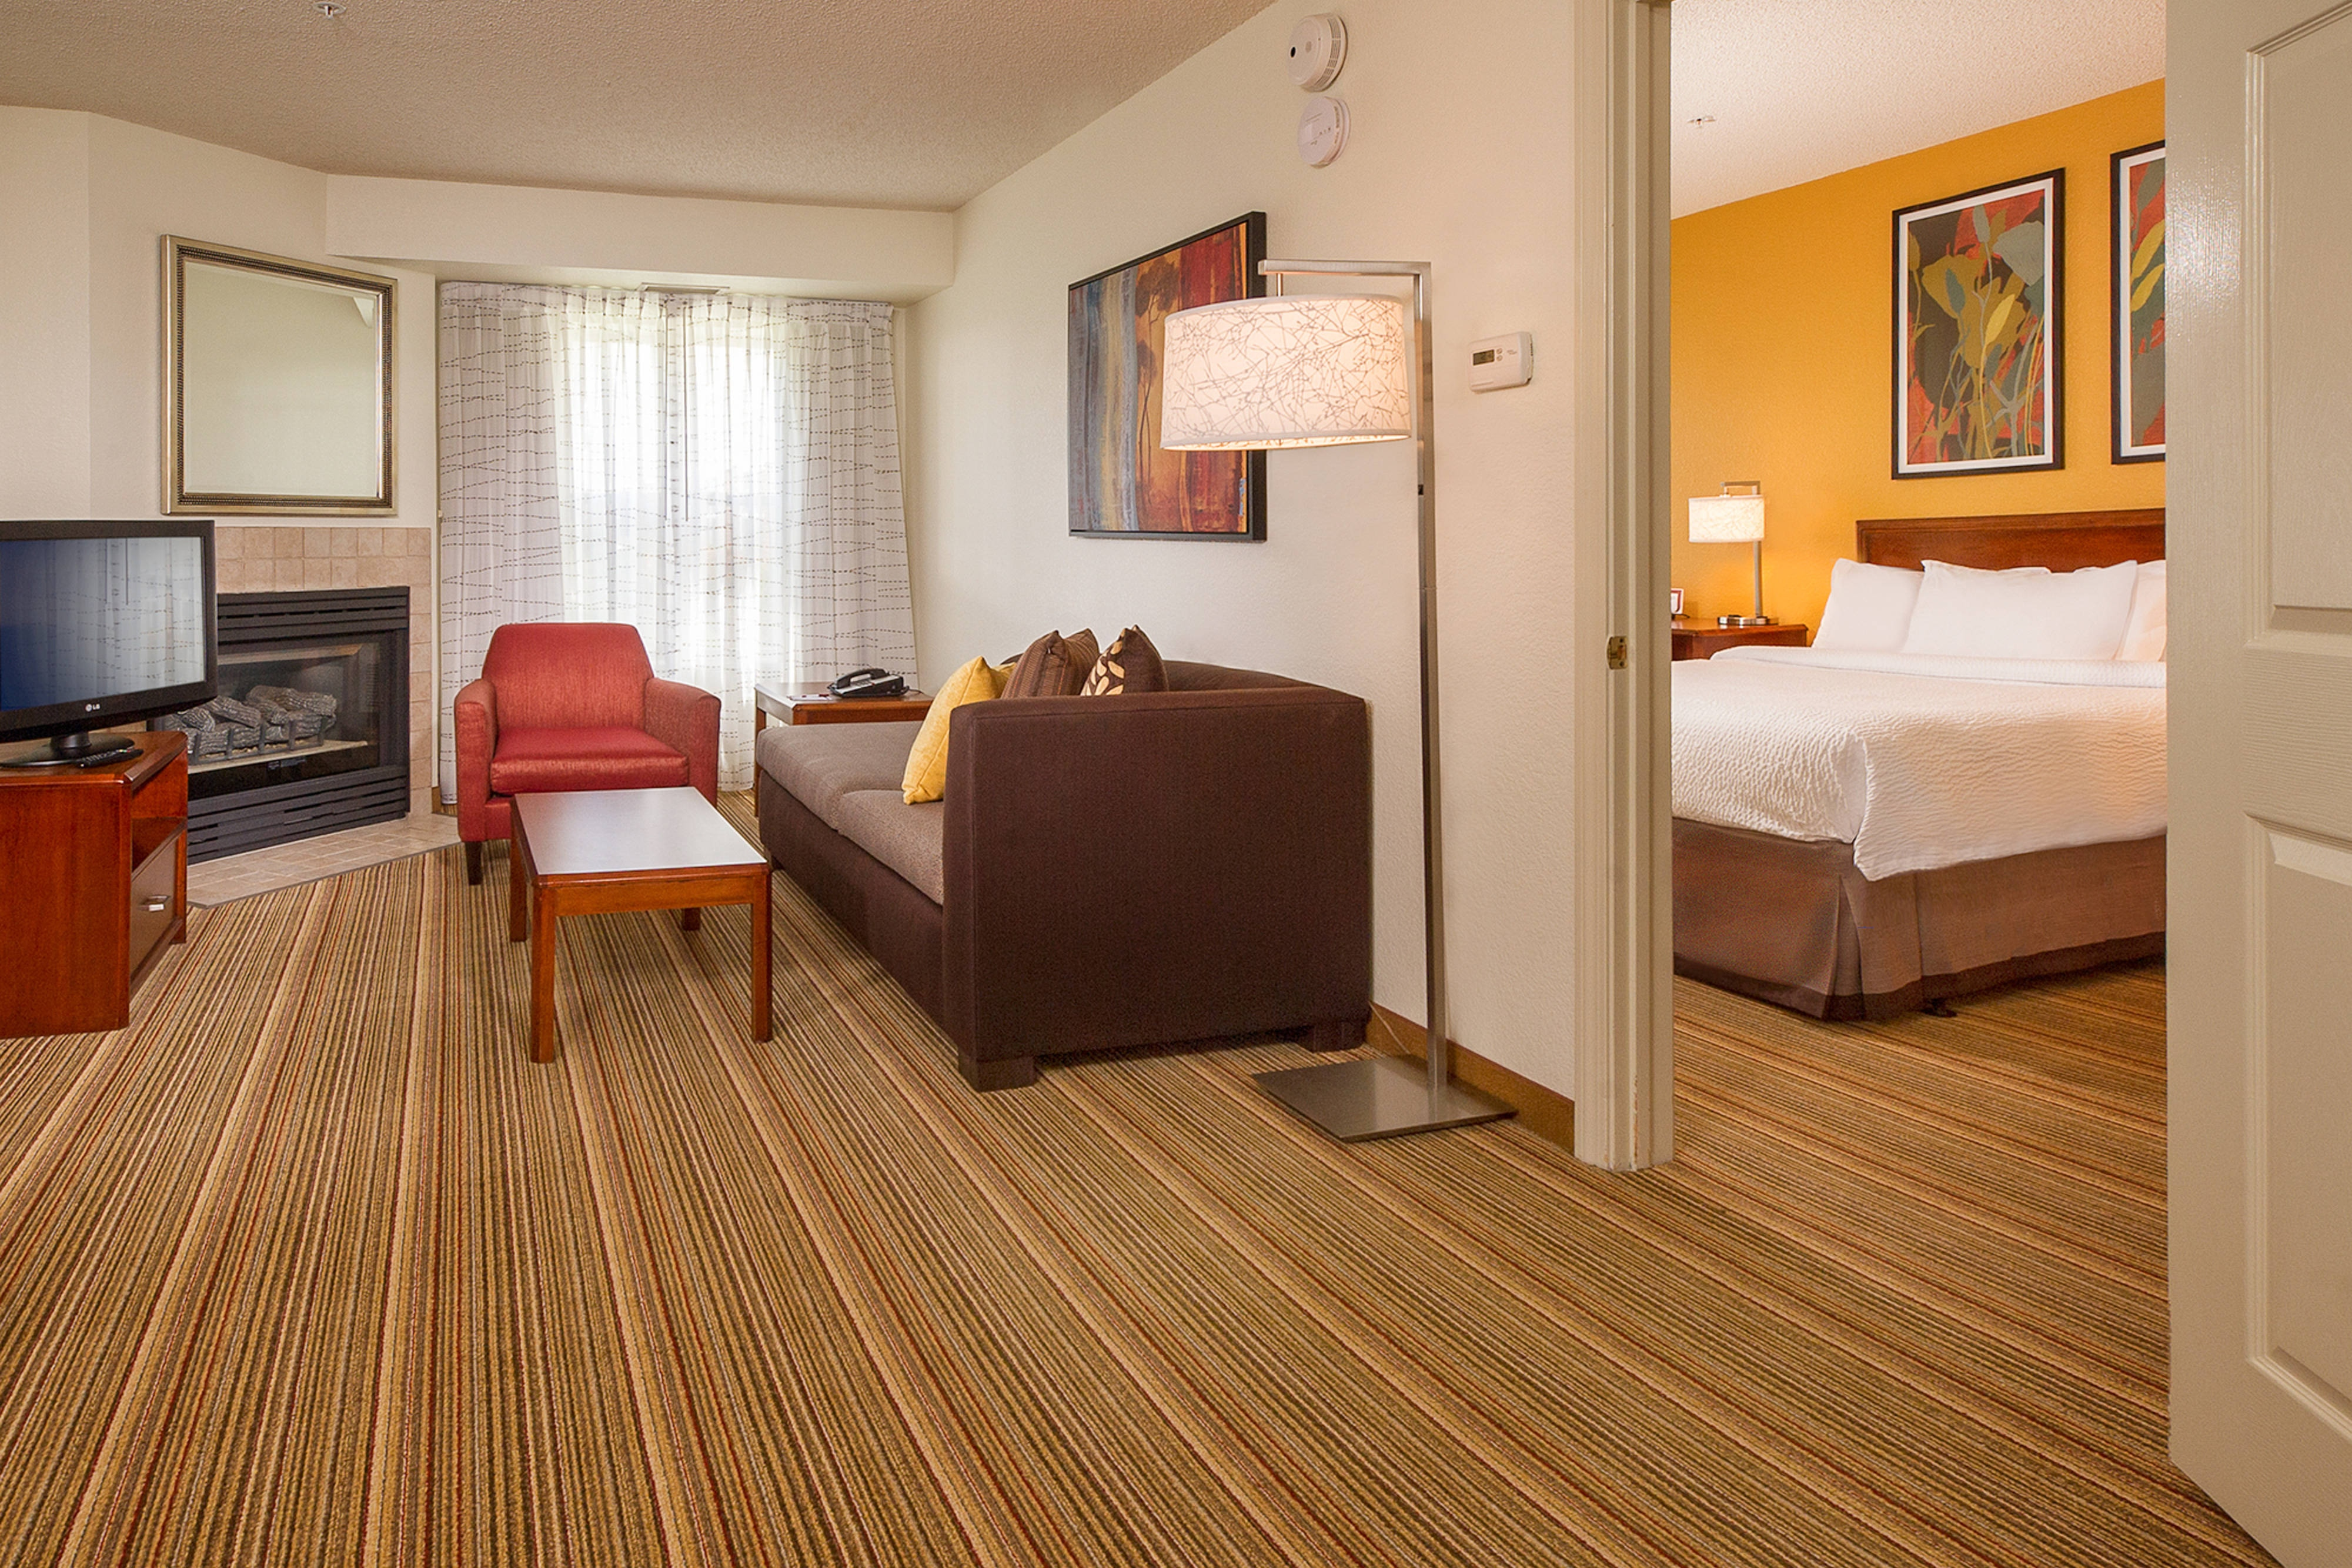 airport aiyeh suite clsc hotels city township new atlantic in residence suites egg bedroom hotel orleans inn harbor nj hor rooms